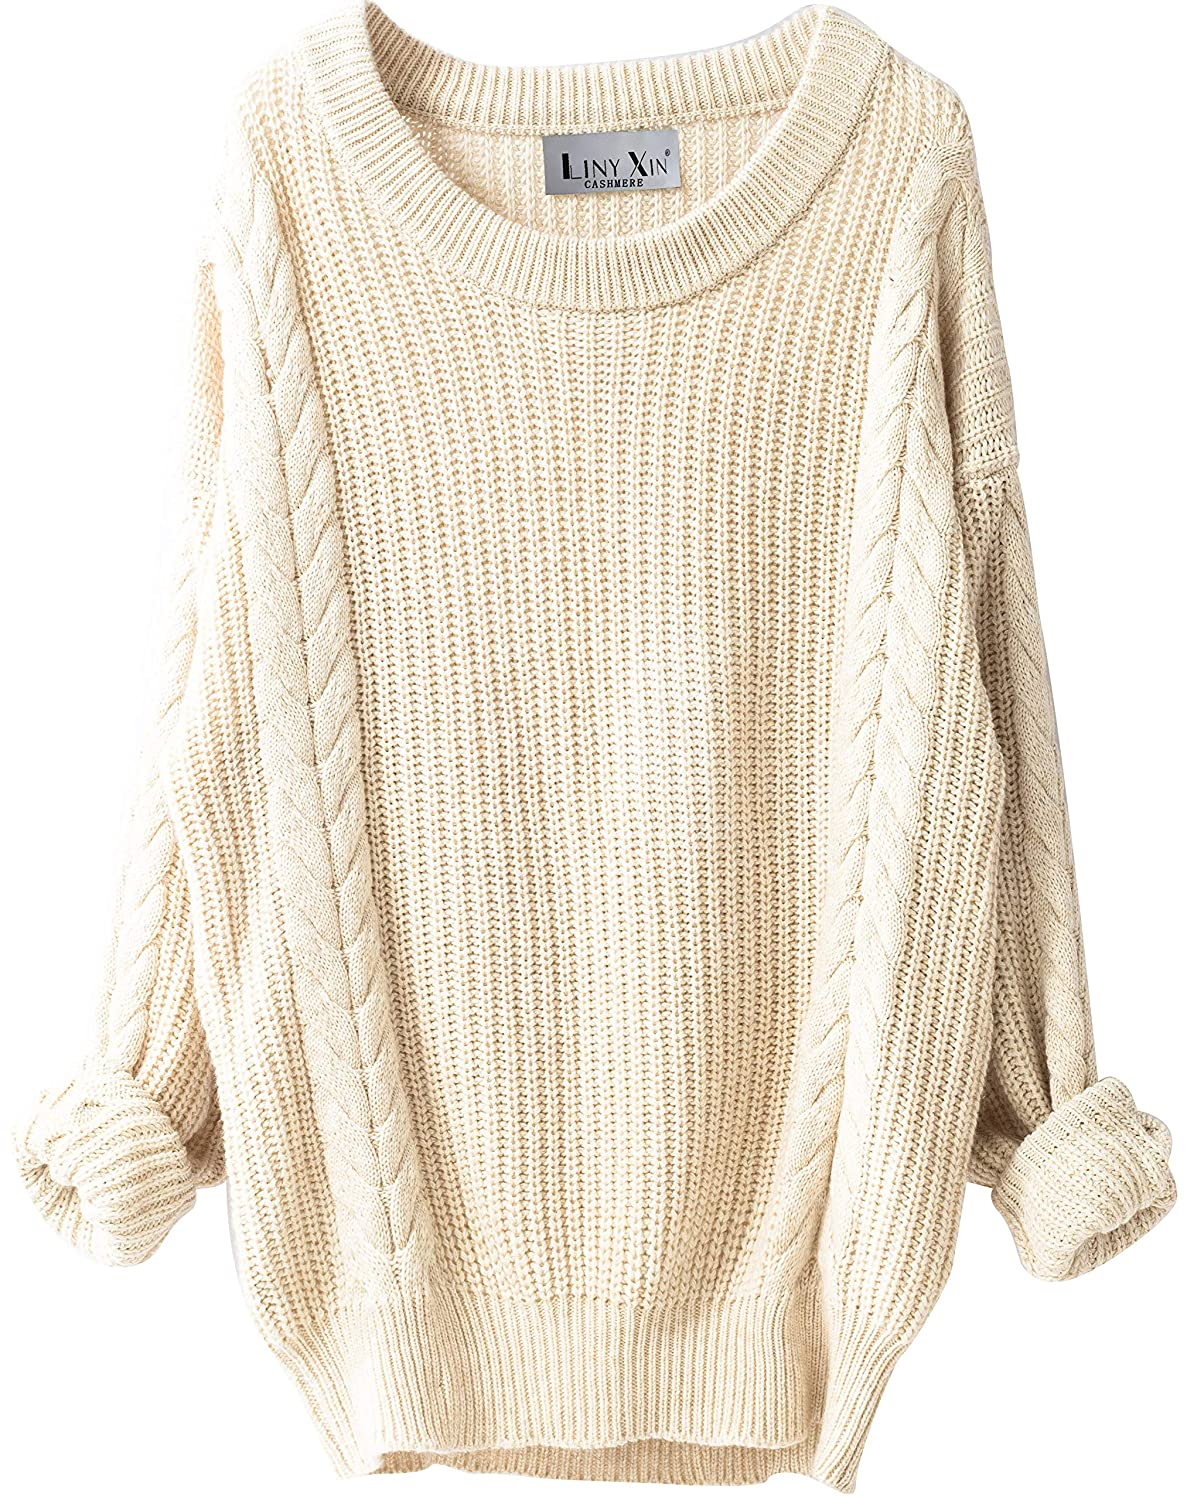 4099cedd2a8df Liny Xin Women's Cashmere Oversized Loose Knitted Crew Neck Long Sleeve  Winter Warm Wool Pullover Long Sweater Dresses Tops (Beige) at Amazon  Women's ...